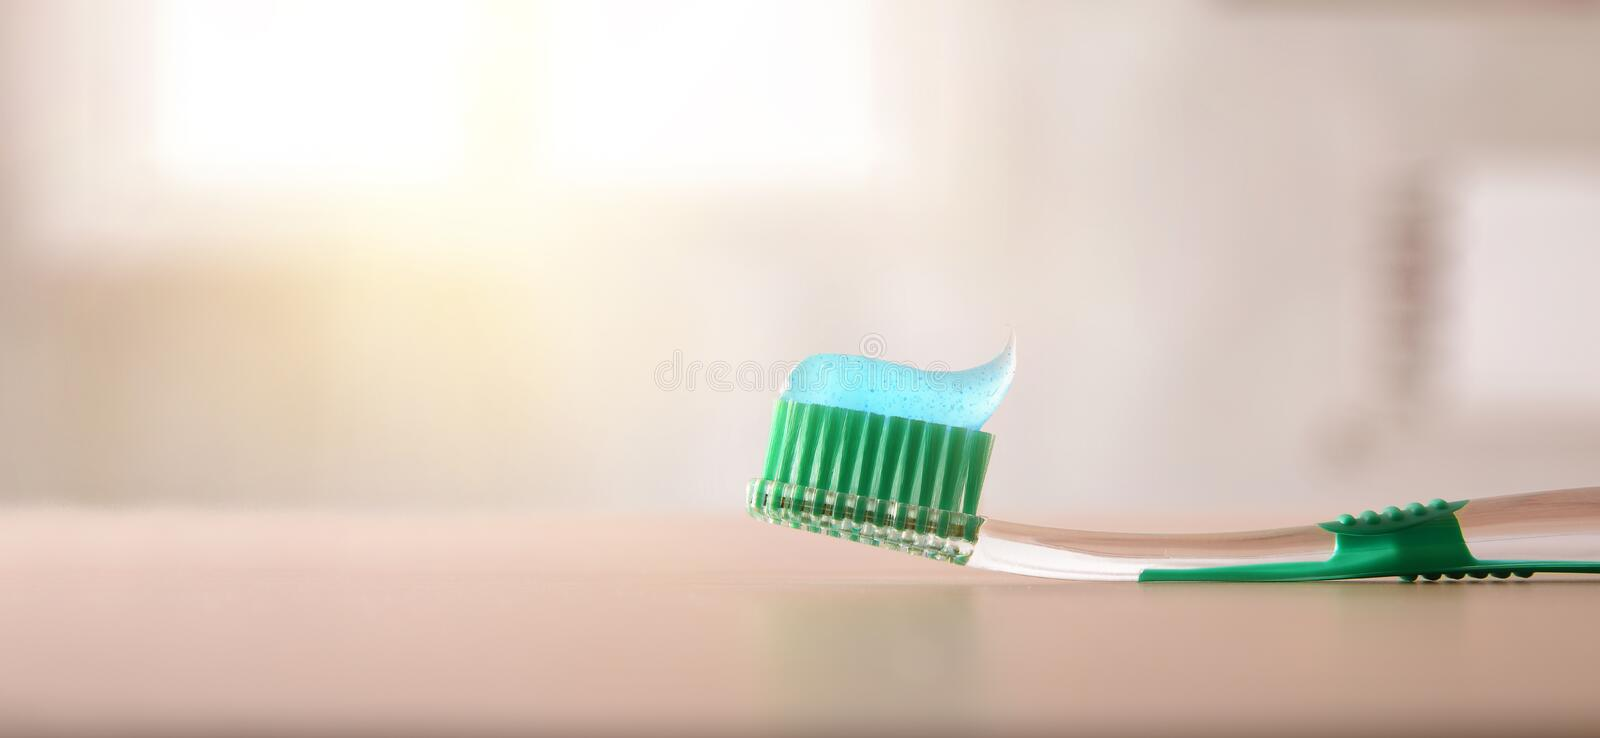 Oral hygiene with toothbrush with toothpaste on table in bathroom. Concept oral hygiene with toothbrush on wood table in bathroom. Horizontal composition. Front stock images